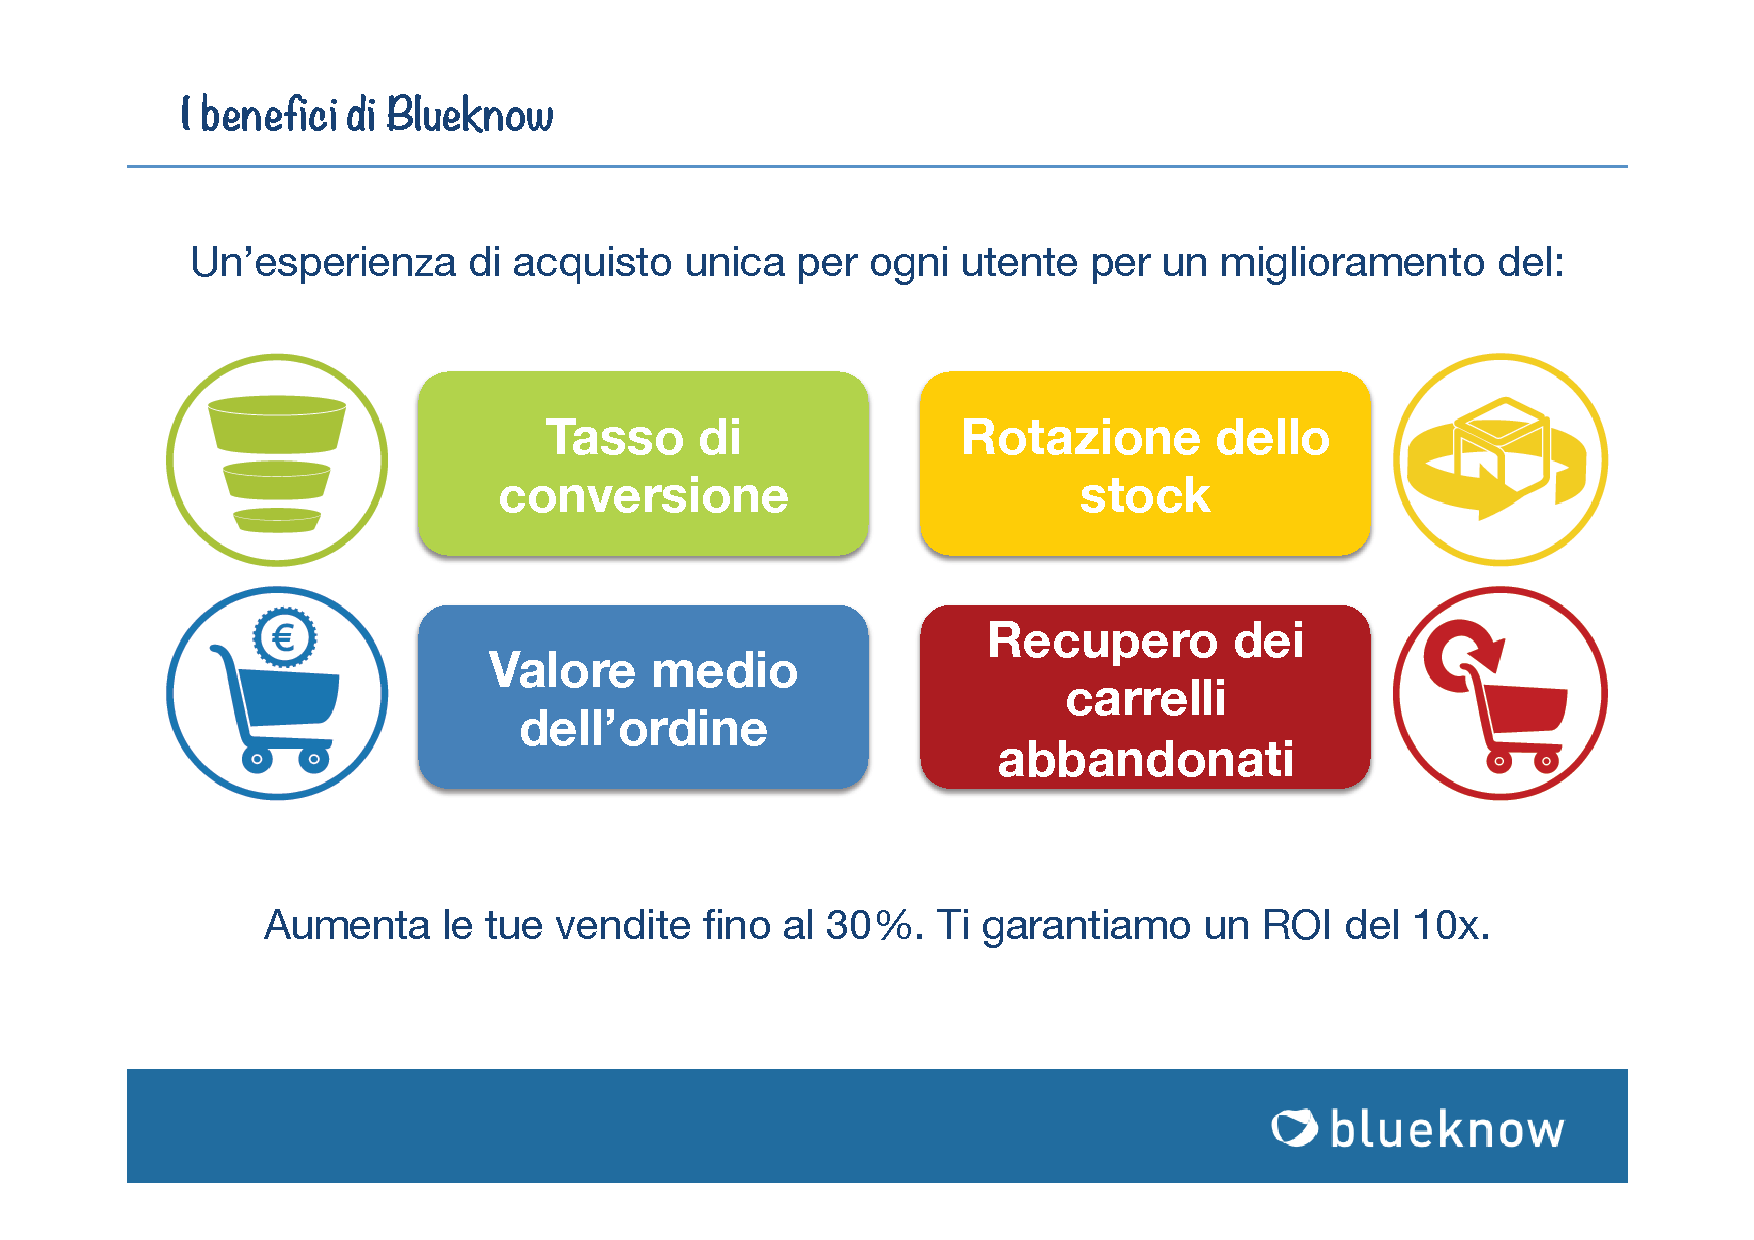 I benefici di Blueknow